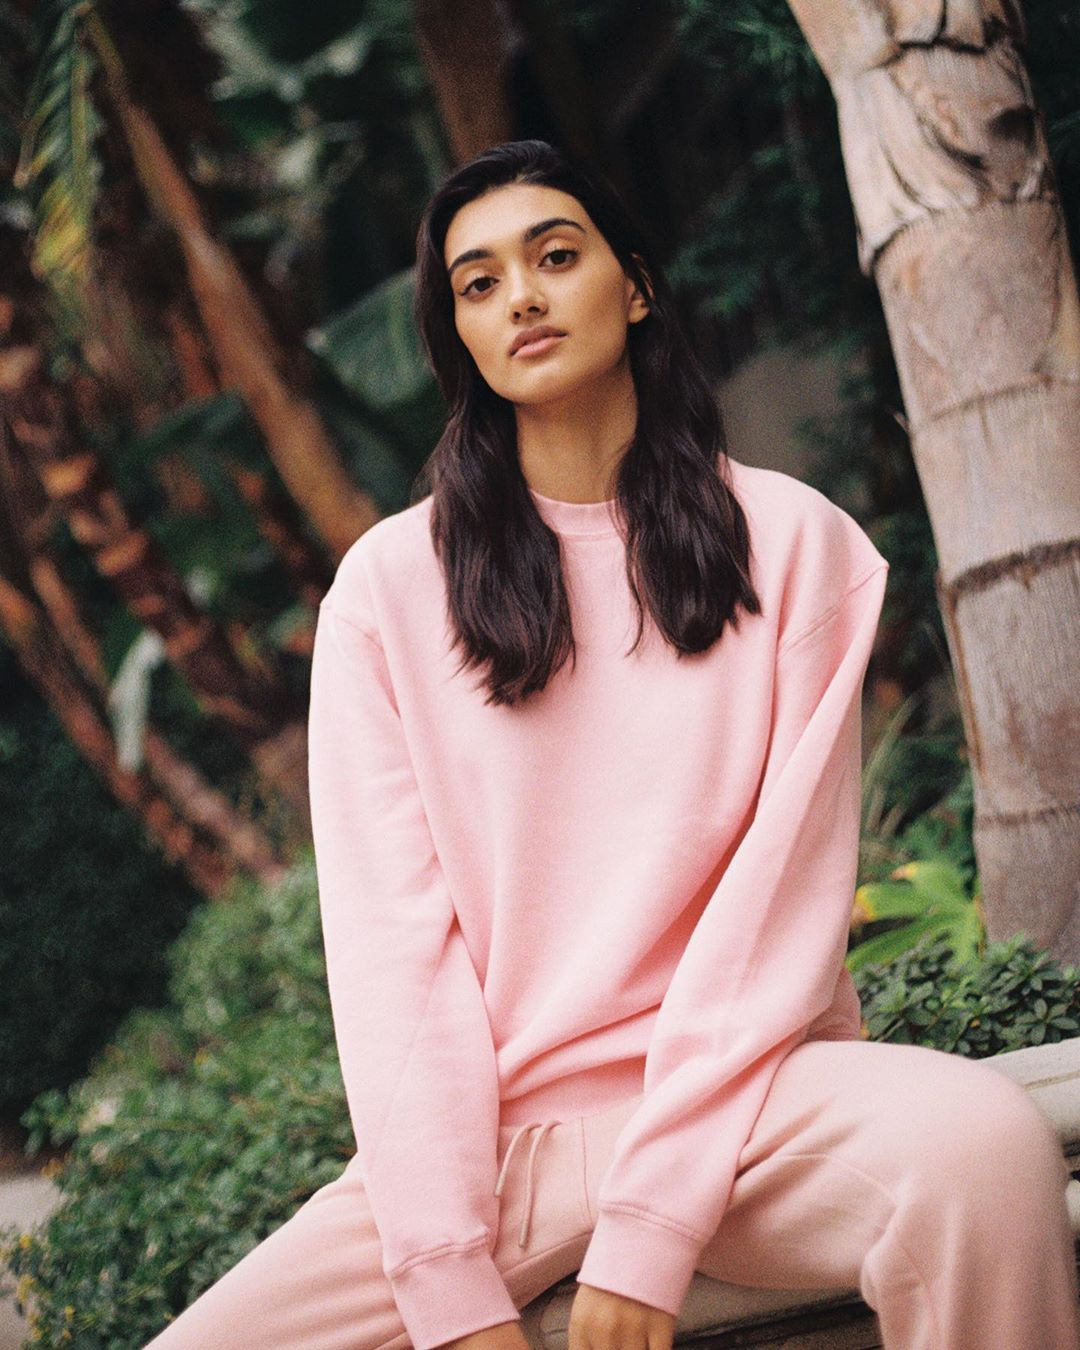 Neelam Gill instagram photoshoot, photography ideas, Hot Model Picture